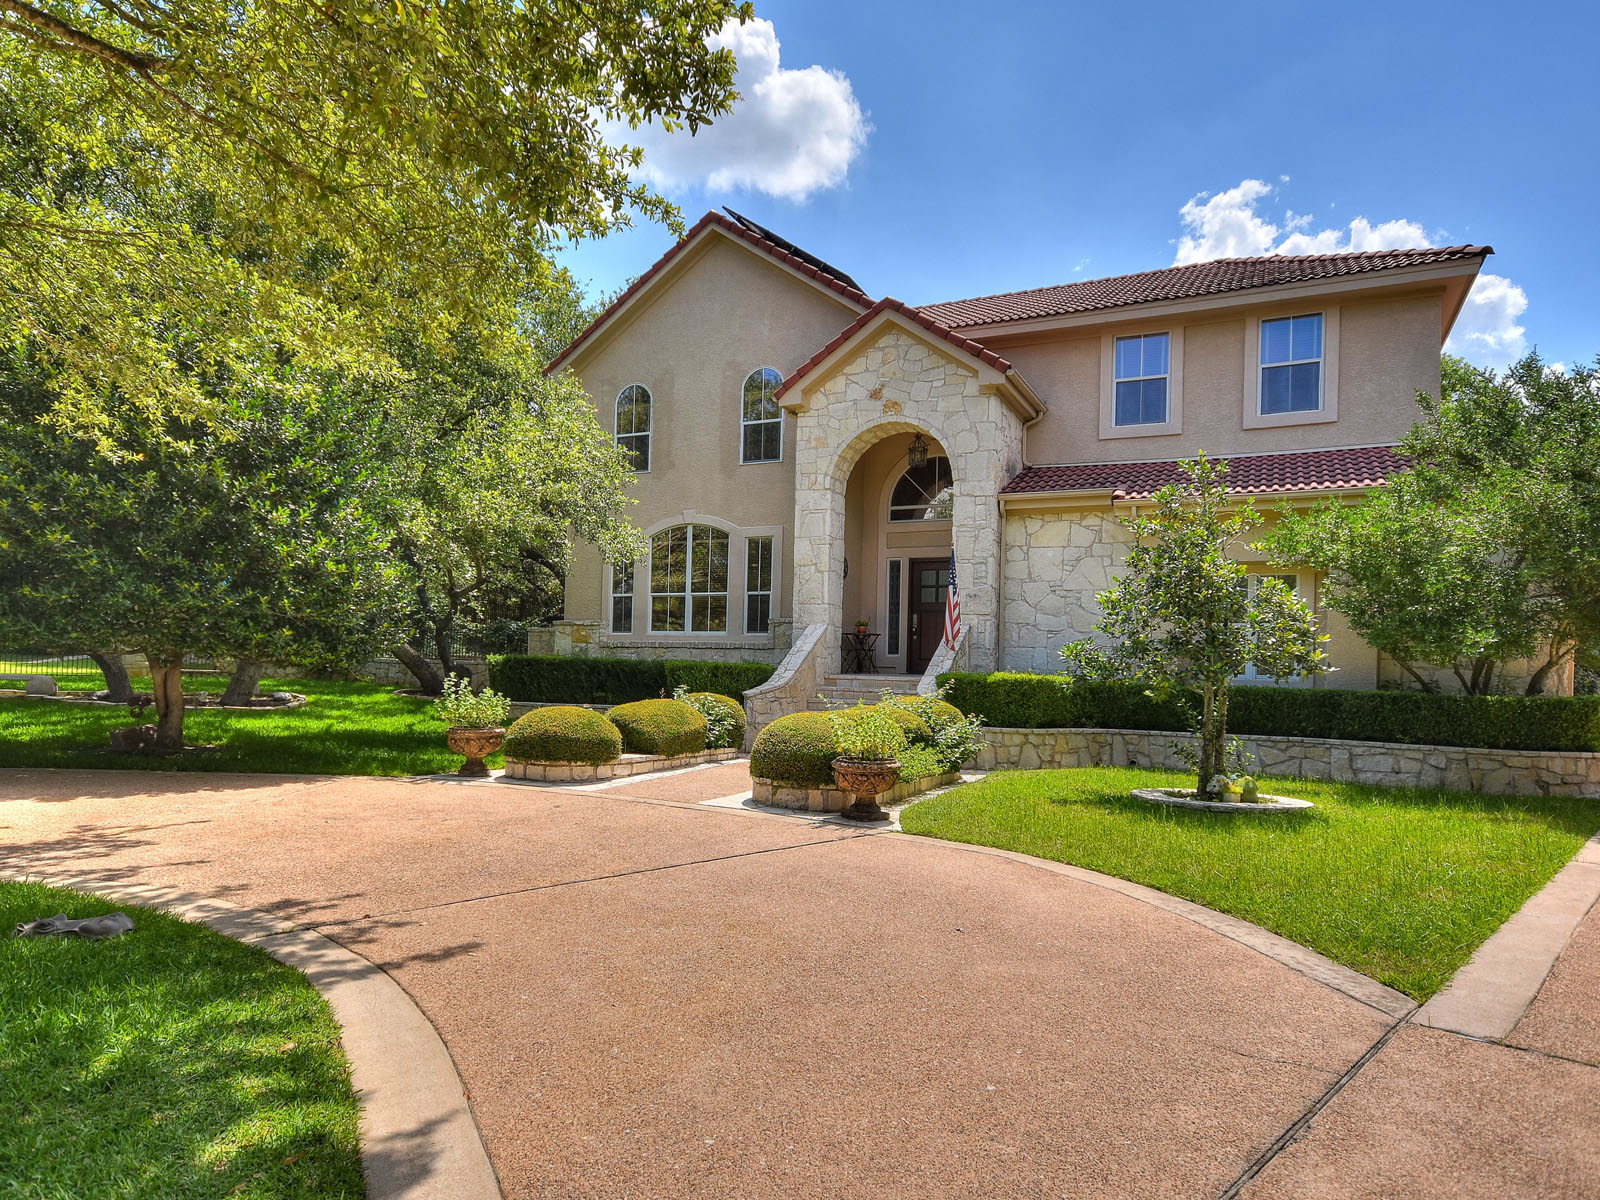 Single Family Home for Sale at Prestigious Hills of Lakeway Home 12 Butterfly Pl The Hills, Texas 78738 United States